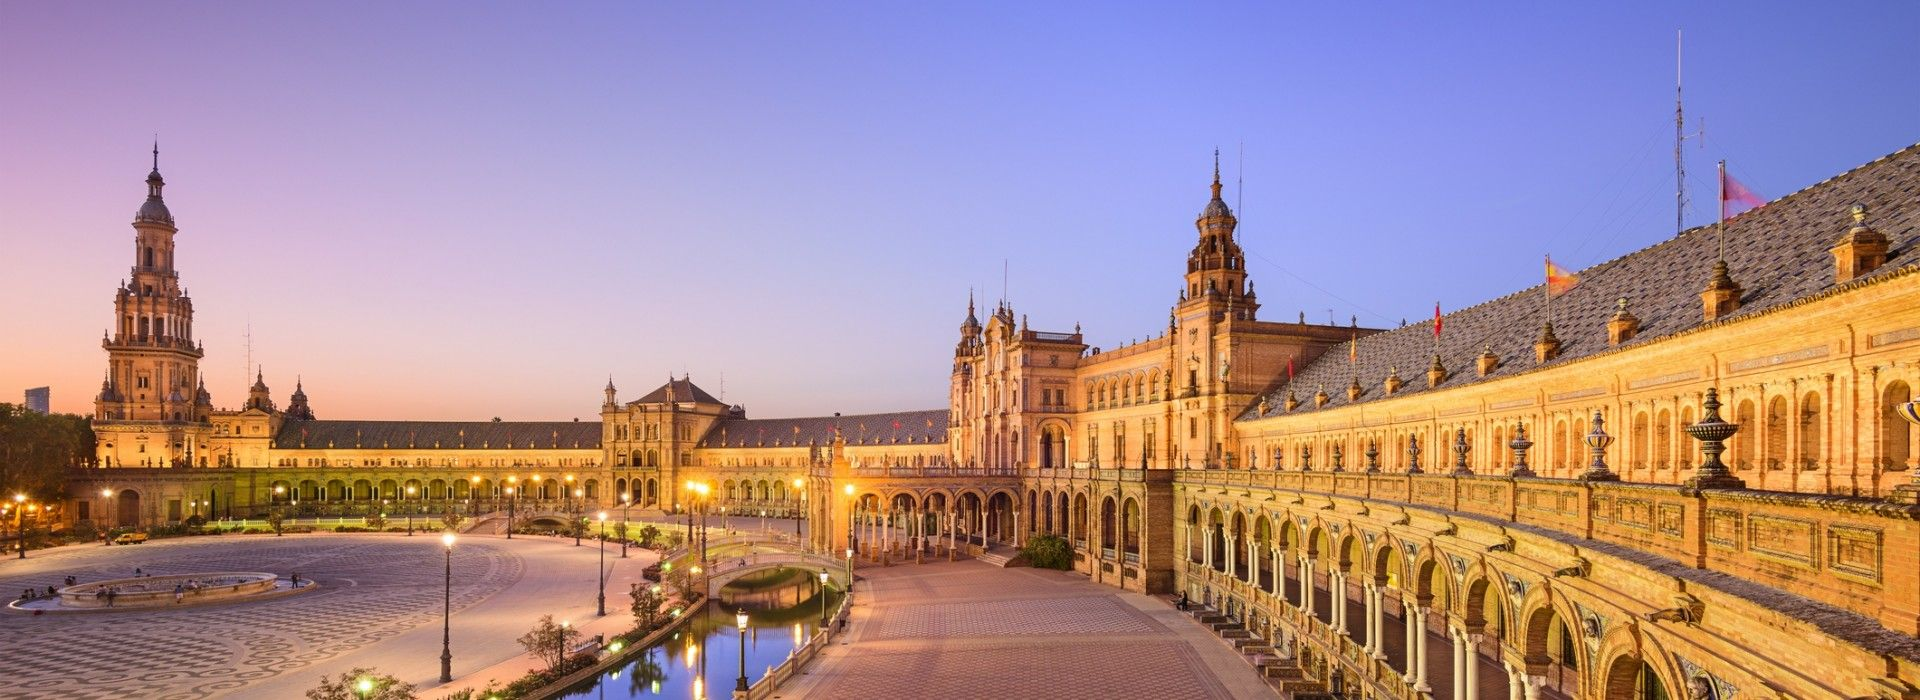 Sightseeing, attractions, culture and history Tours in Seville